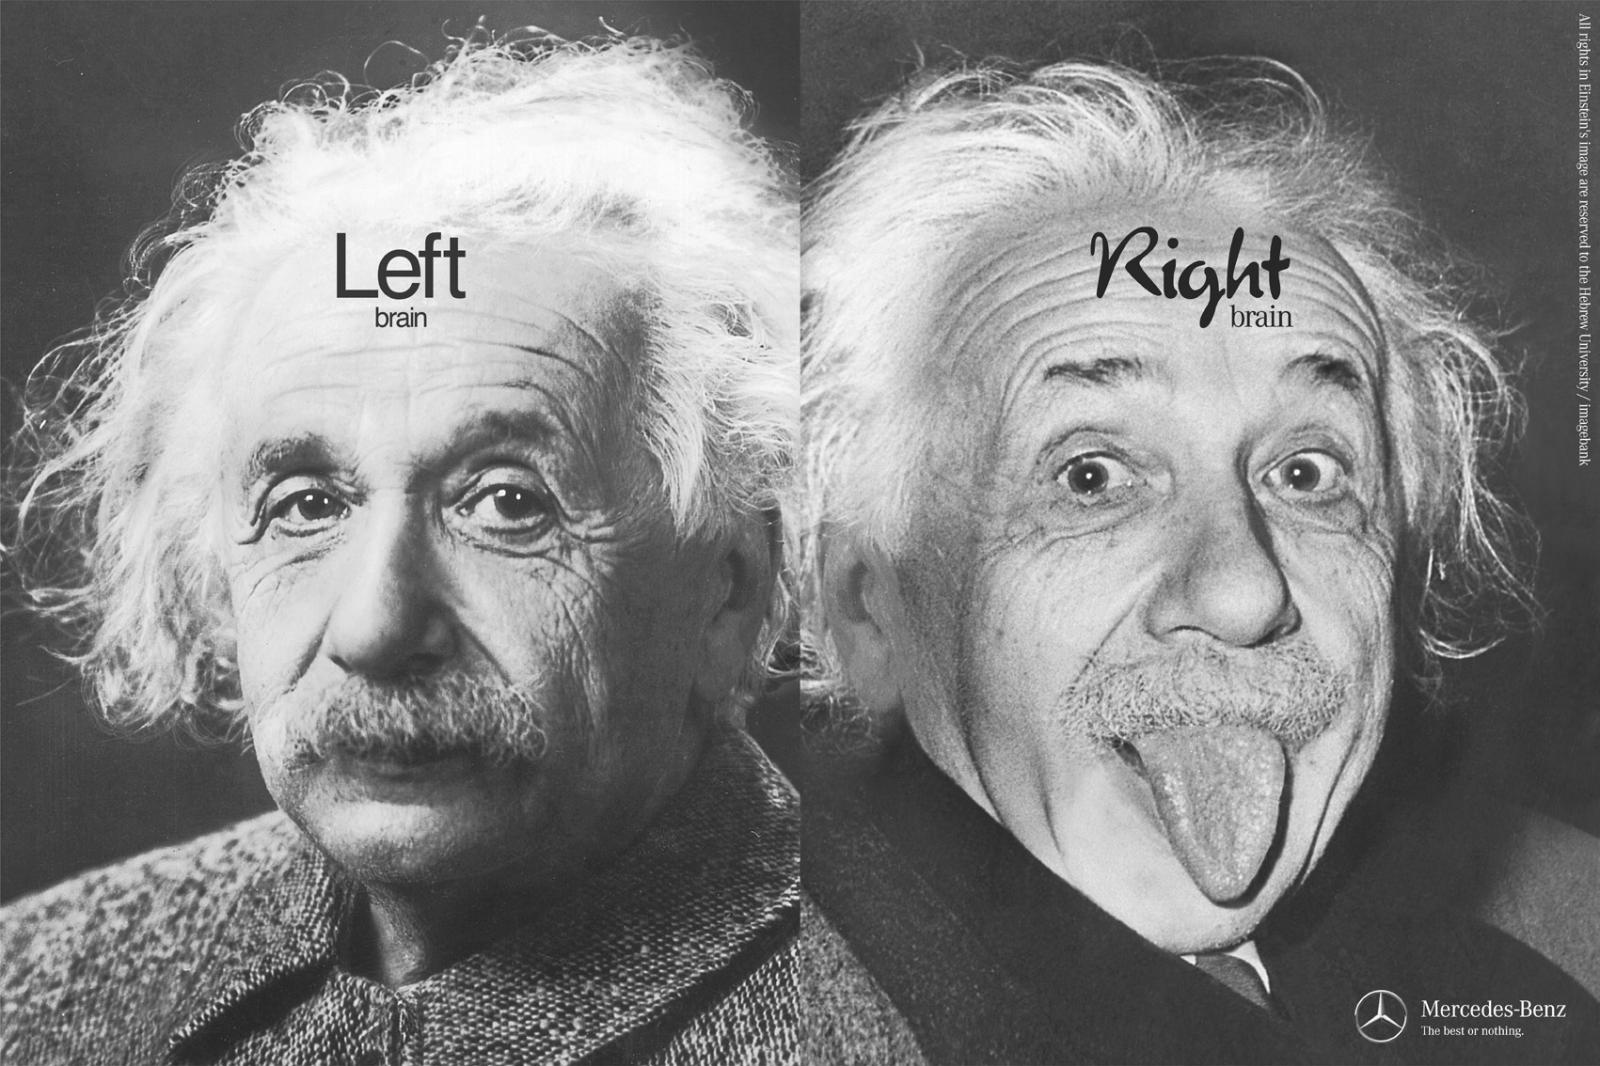 mercedes-benz-left-brain-right-brain-einstein